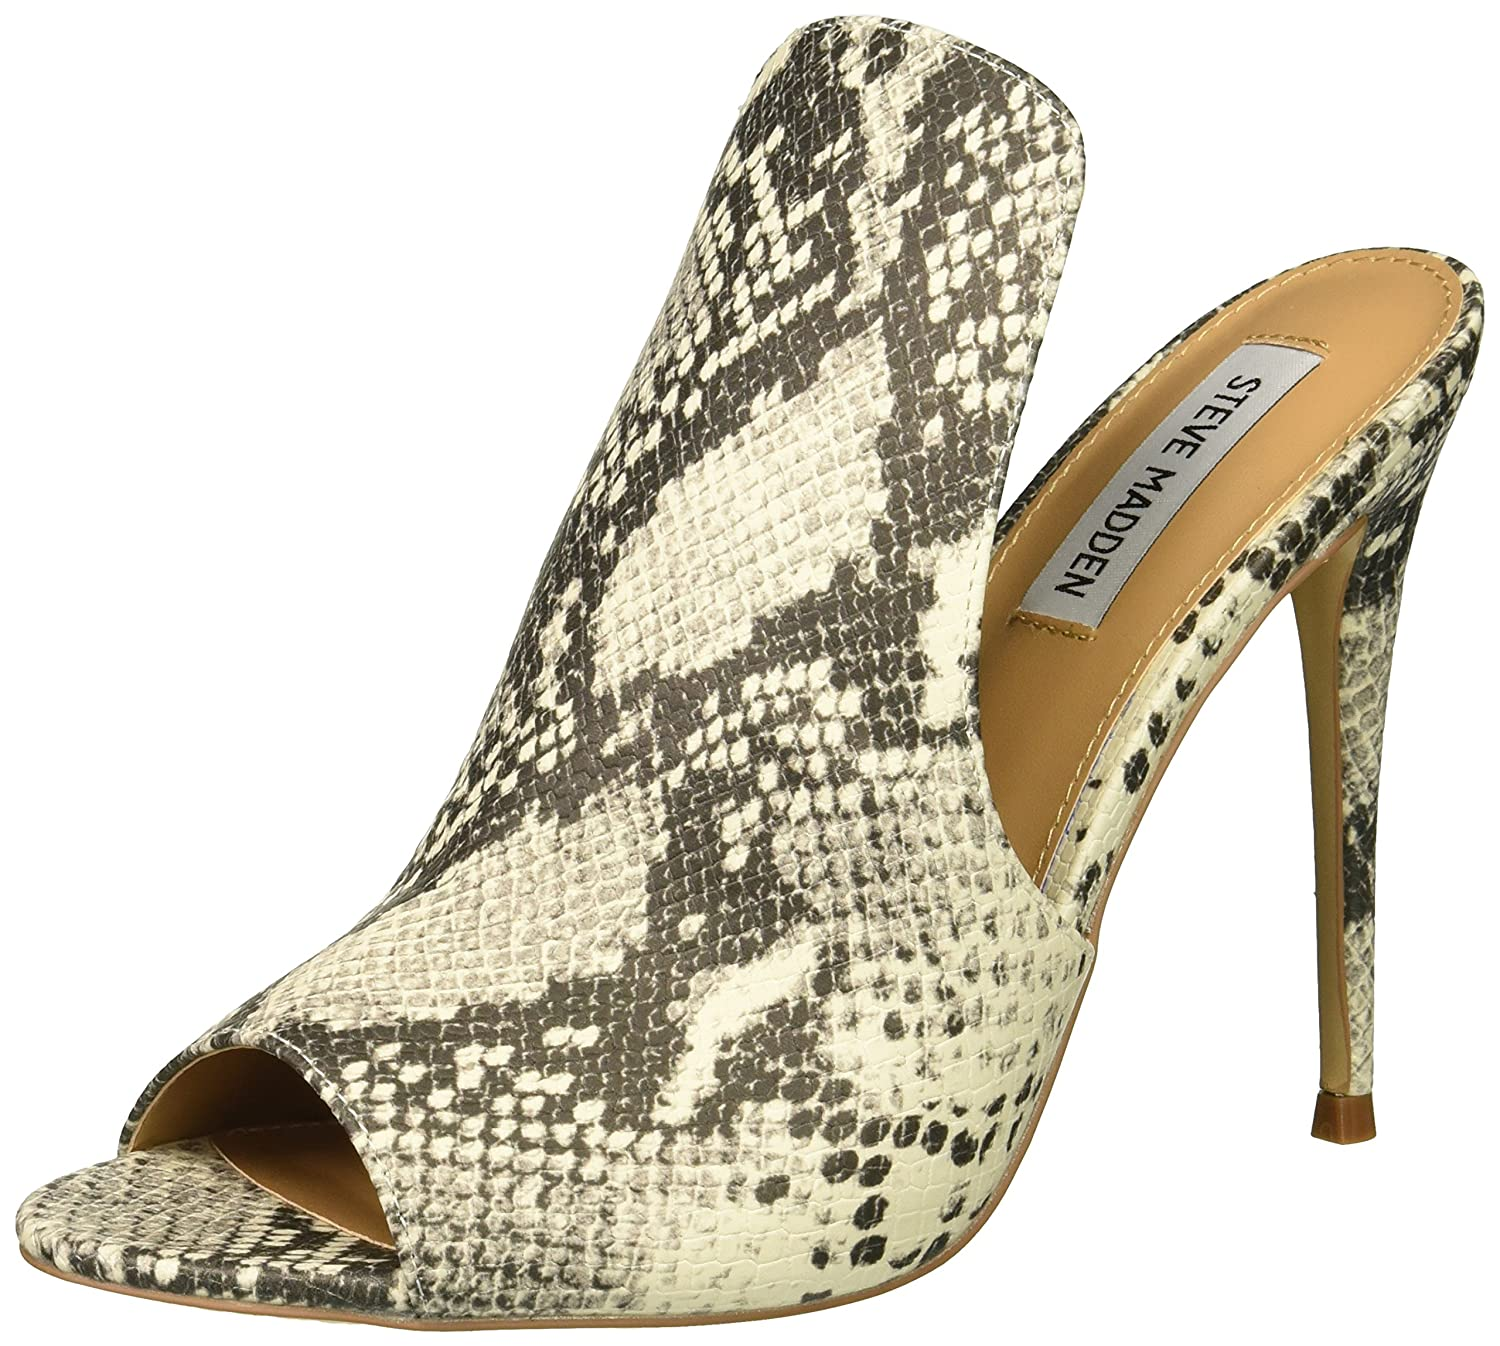 Steve Madden Donna  Sinful Heeled Sandal, Natural Snake, 6.5 M US